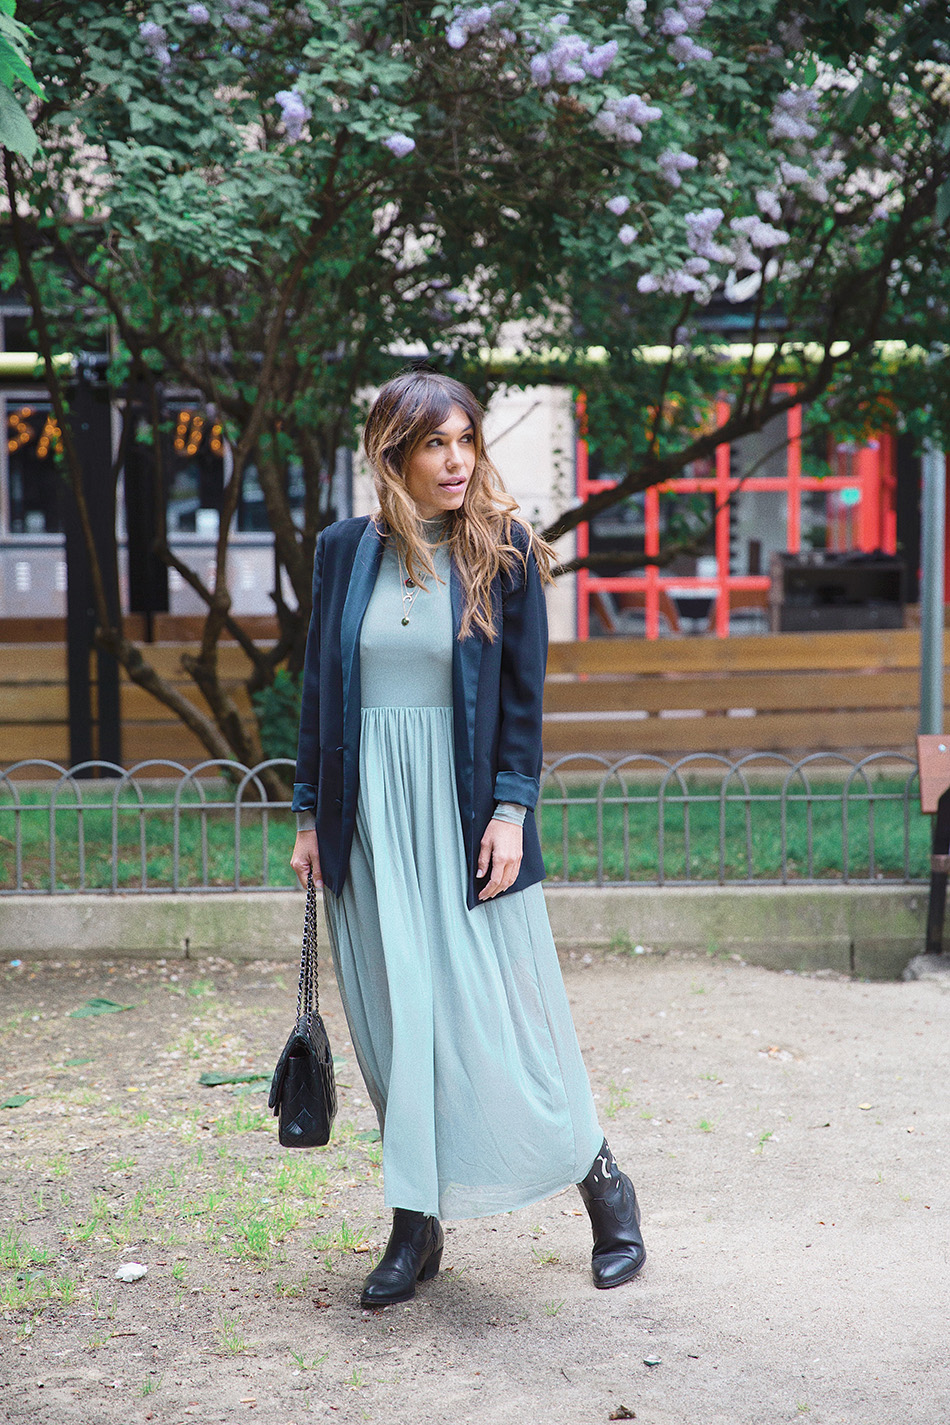 Bárbara Crespo streetstyle. NA-KD Tulle green dress.  Chanel bag. Cowboy boots